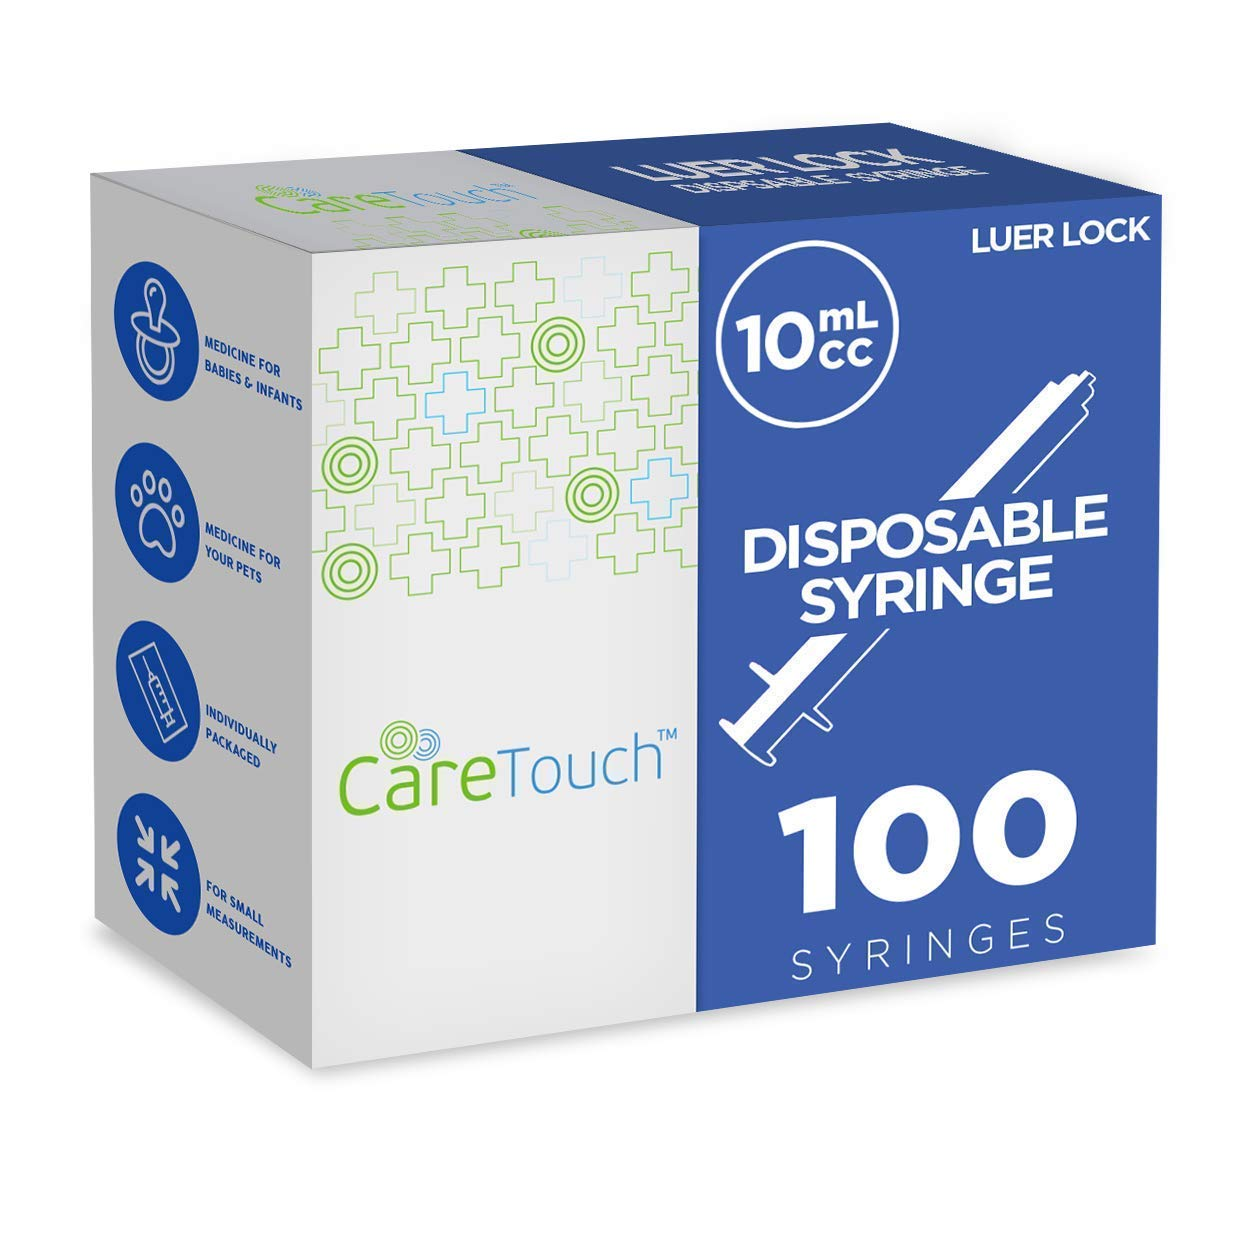 10ml Syringe Only with Luer Lock Tip - 100 Syringes Without a Needle by Care Touch - Great for Medicine, Feeding Tubes, and Home Care by Care Touch